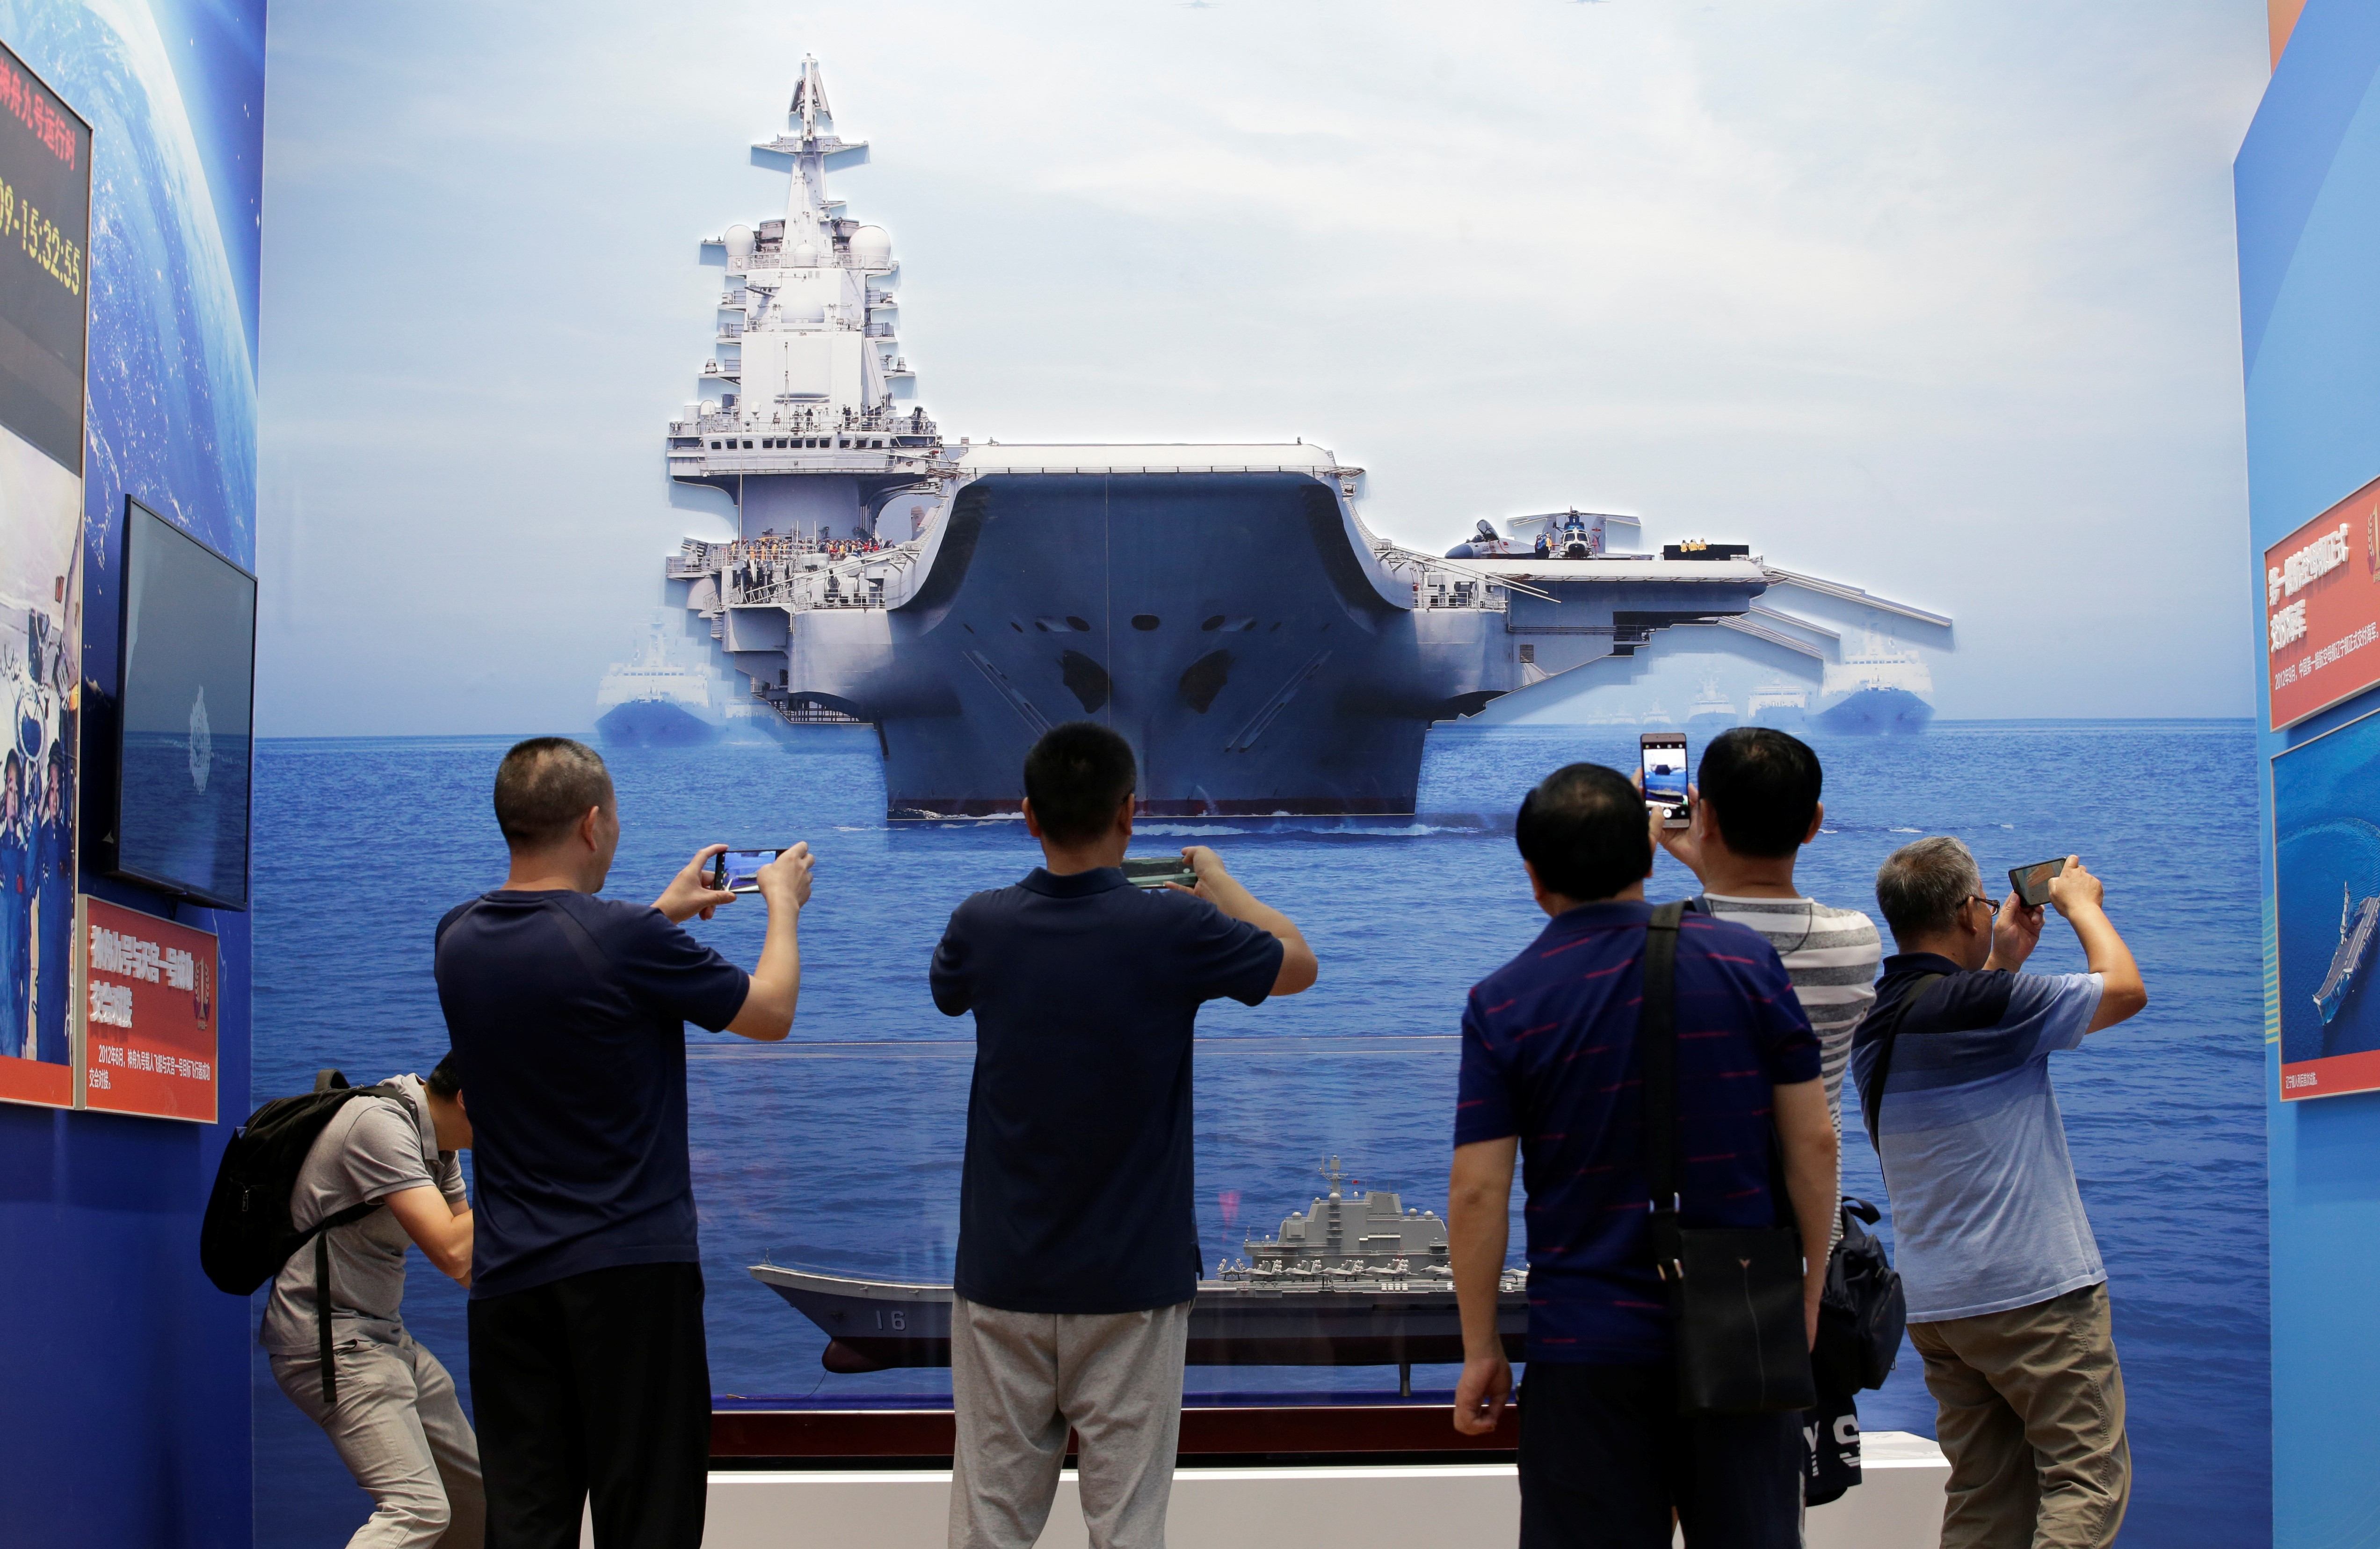 DANGER AHEAD: China's Six Carrier Navy Is Just Around the Corner